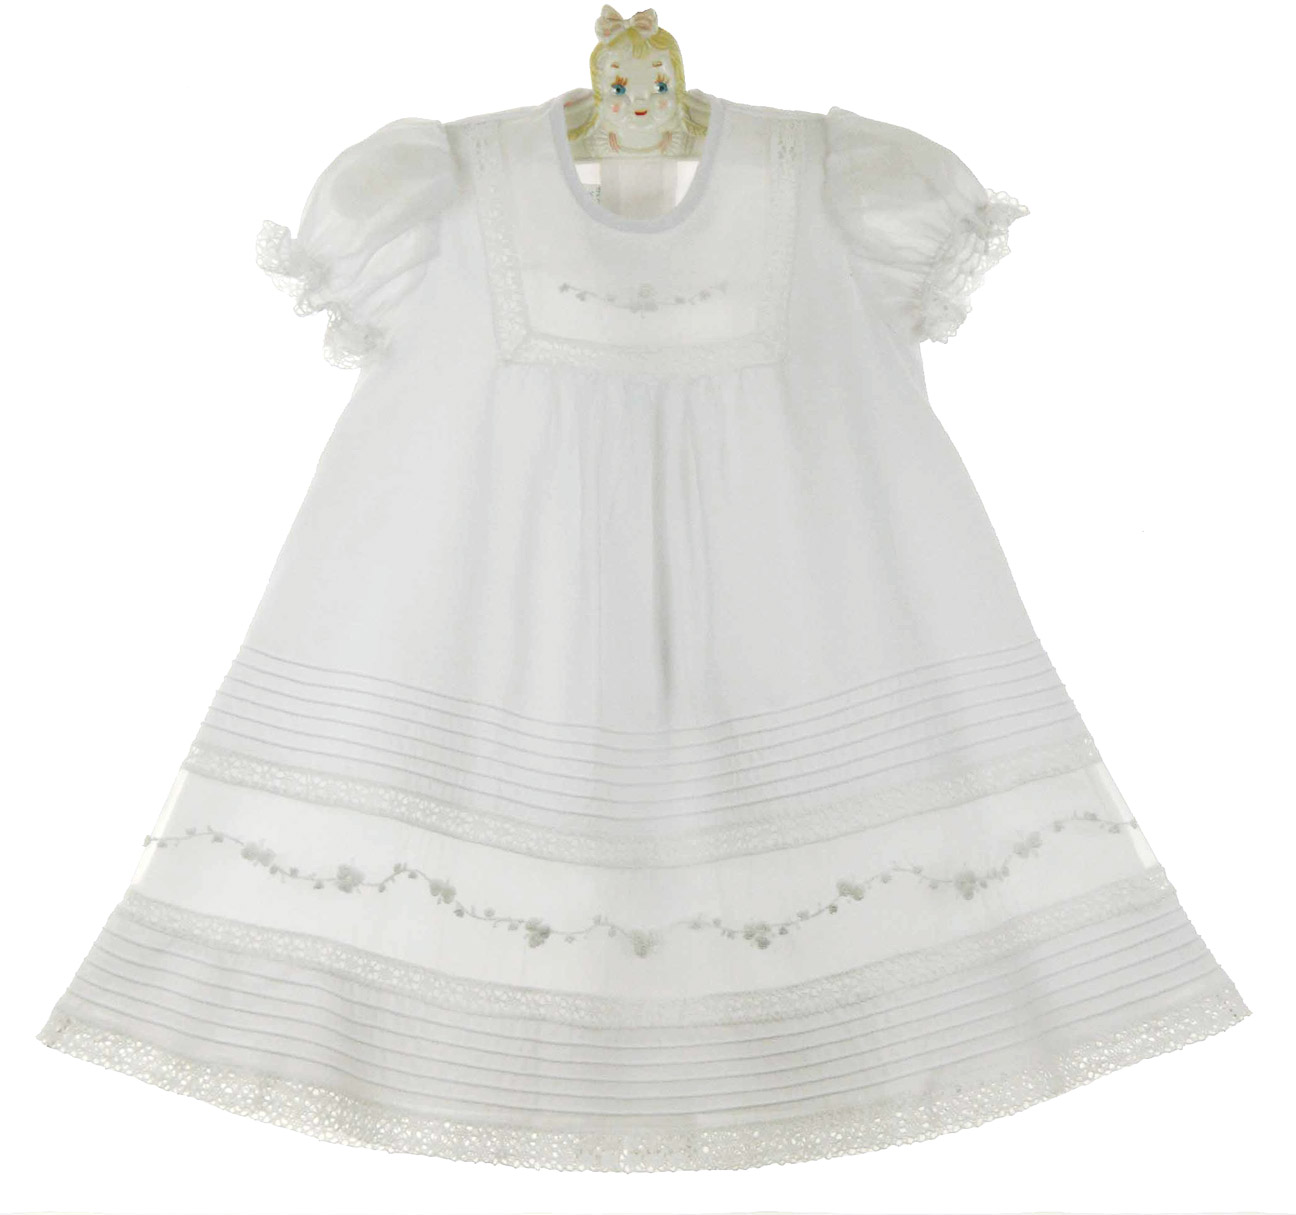 New Will Beth White Pintucked Baby Dress With White